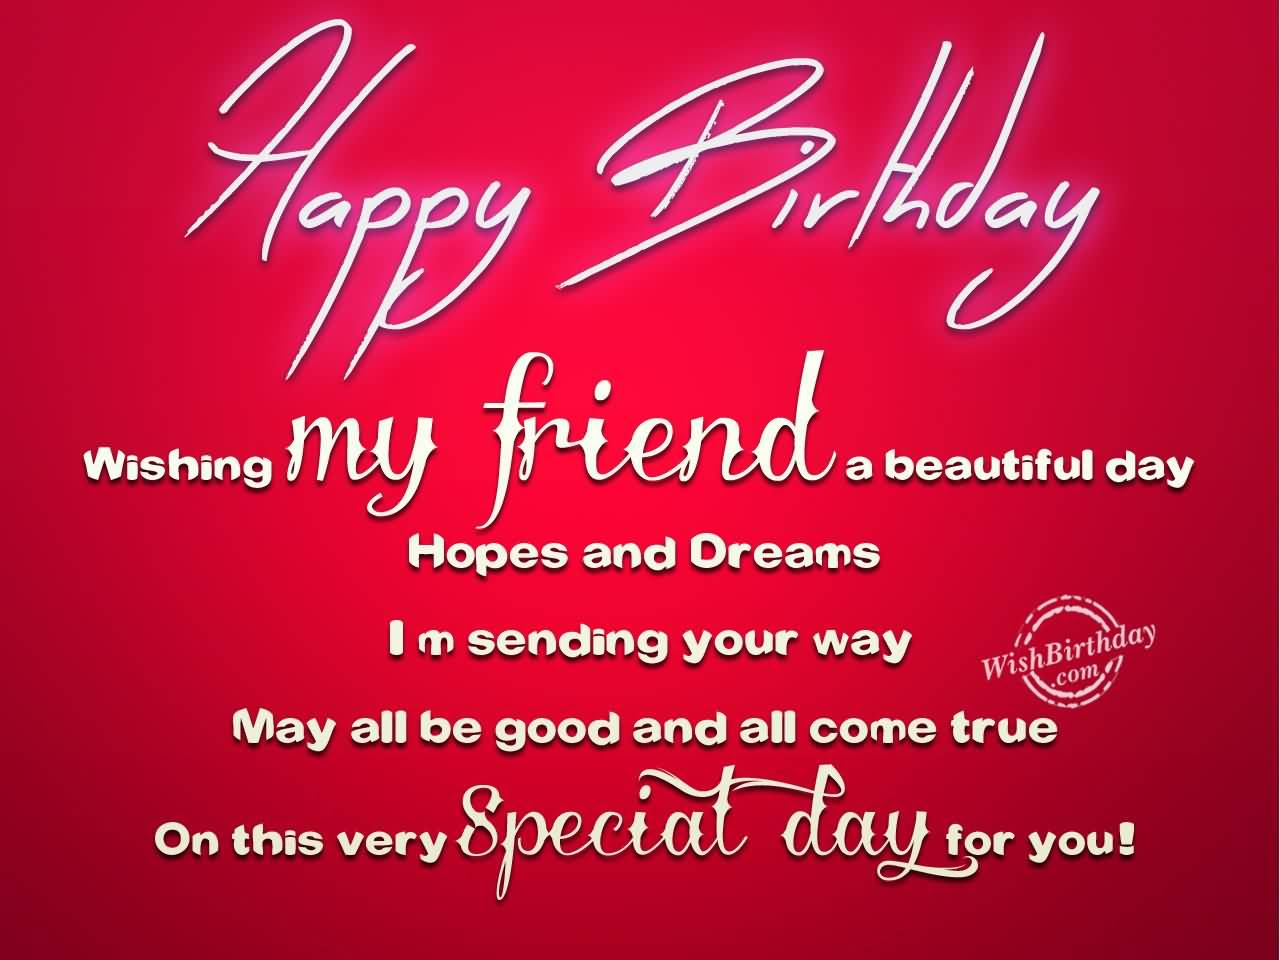 60 Spectacular Birthday Wishes And E Cards Collection Parryz